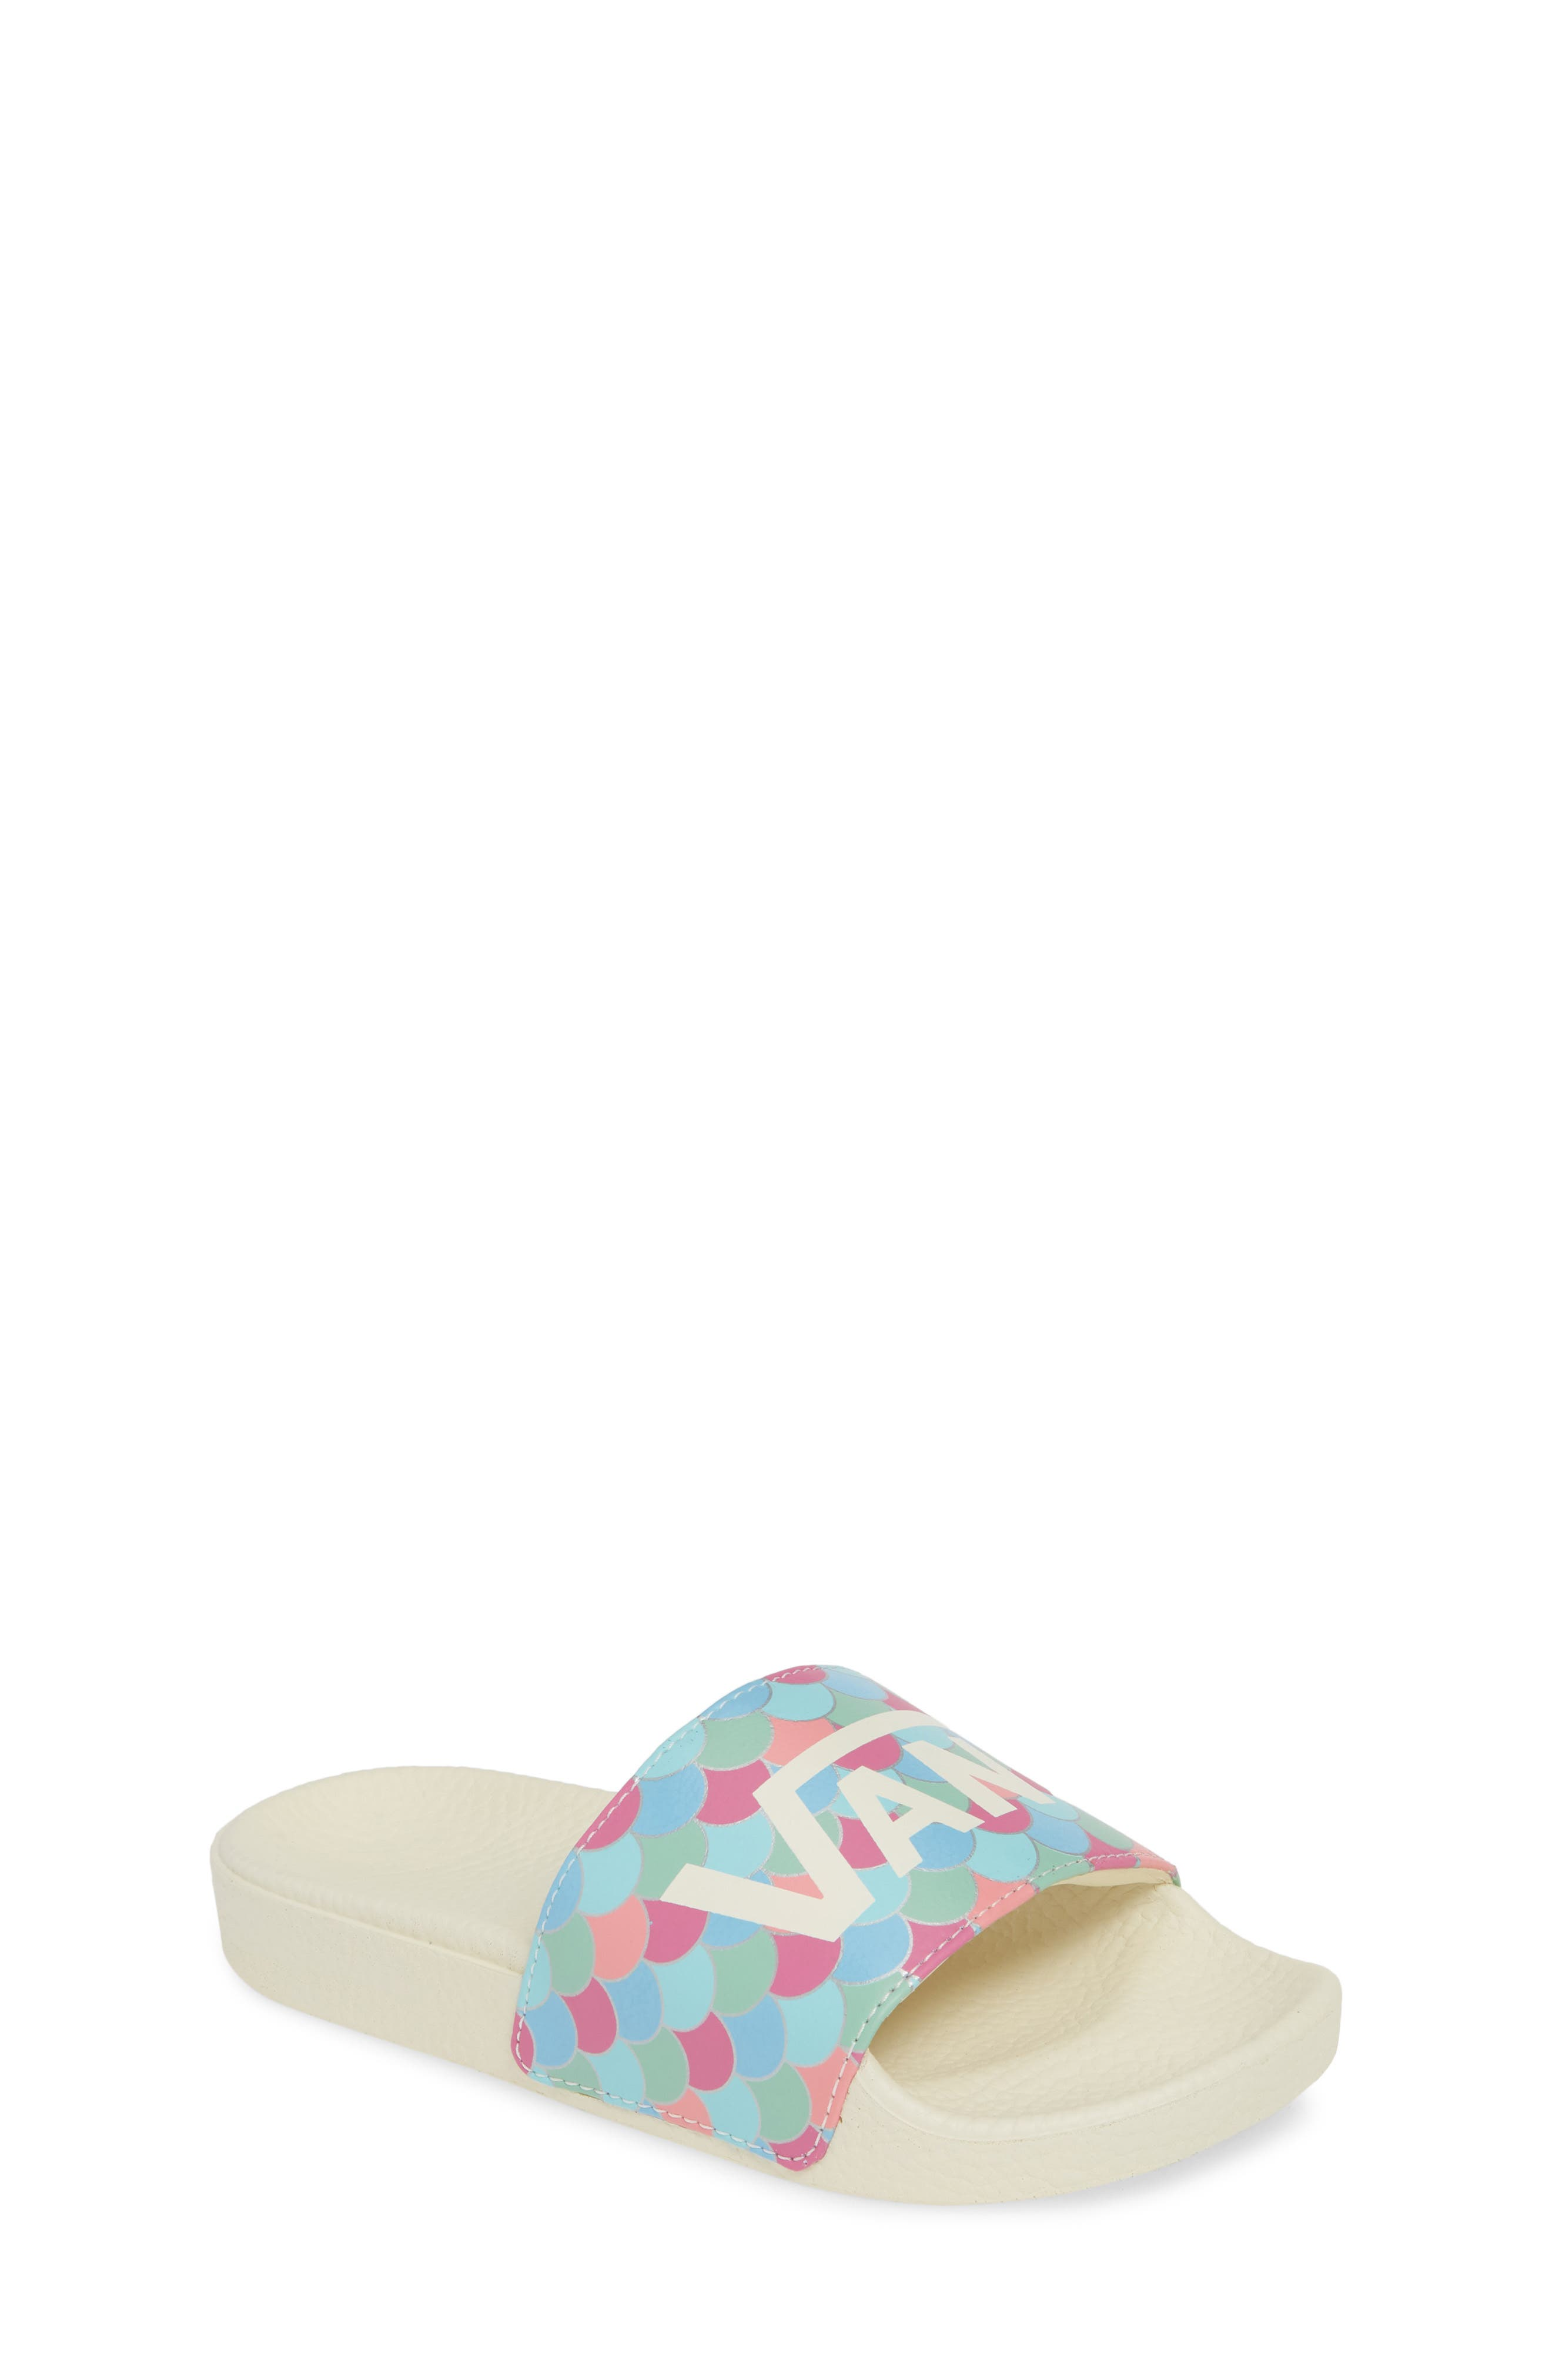 YT Slide-On Sport Slide, Main, color, MARSHMALLOW/ CARMINE ROSE